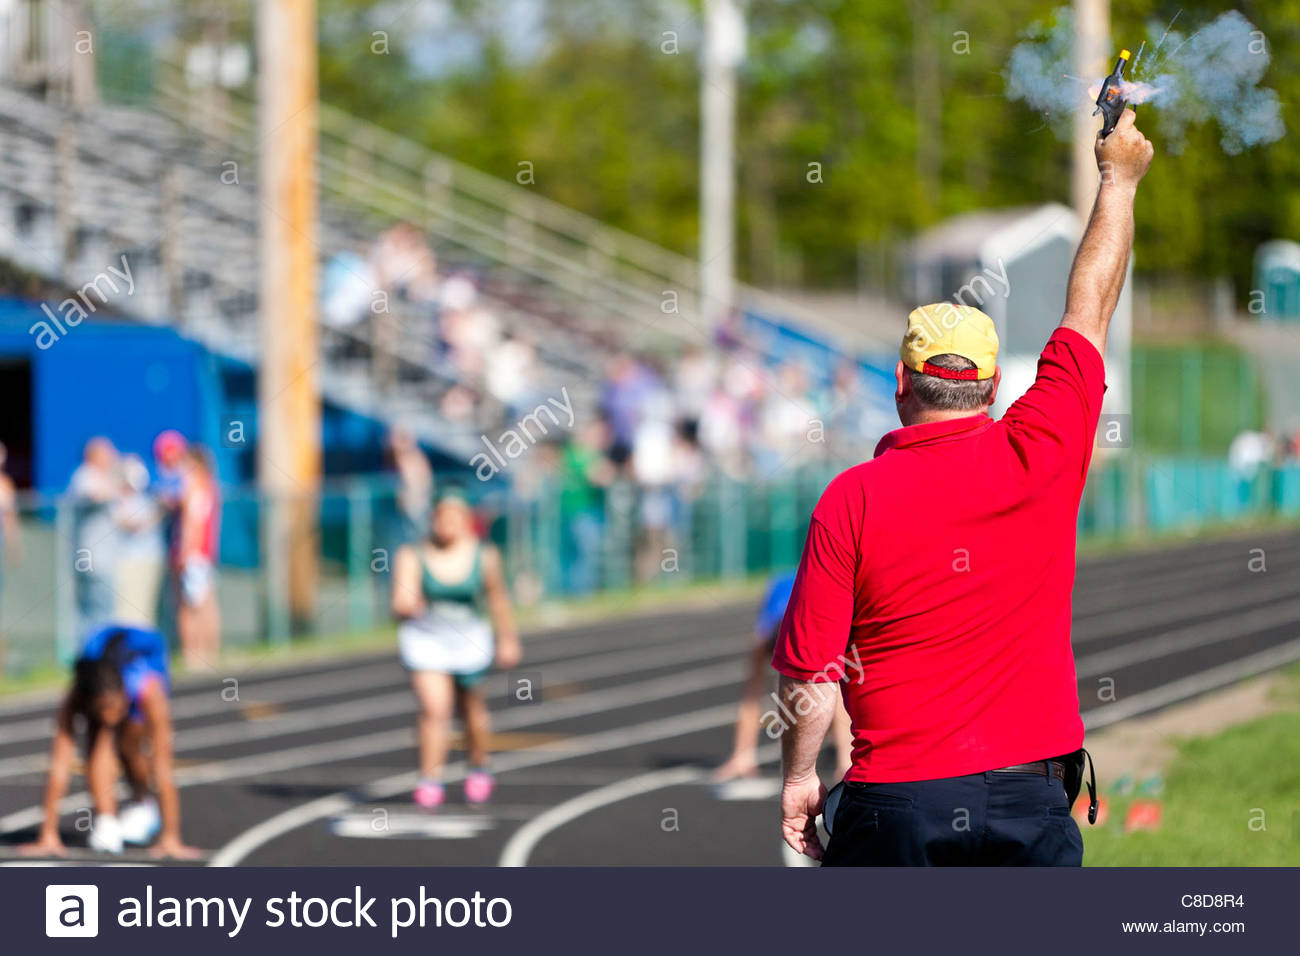 A referee fires the starter pistol for the runners of a track race